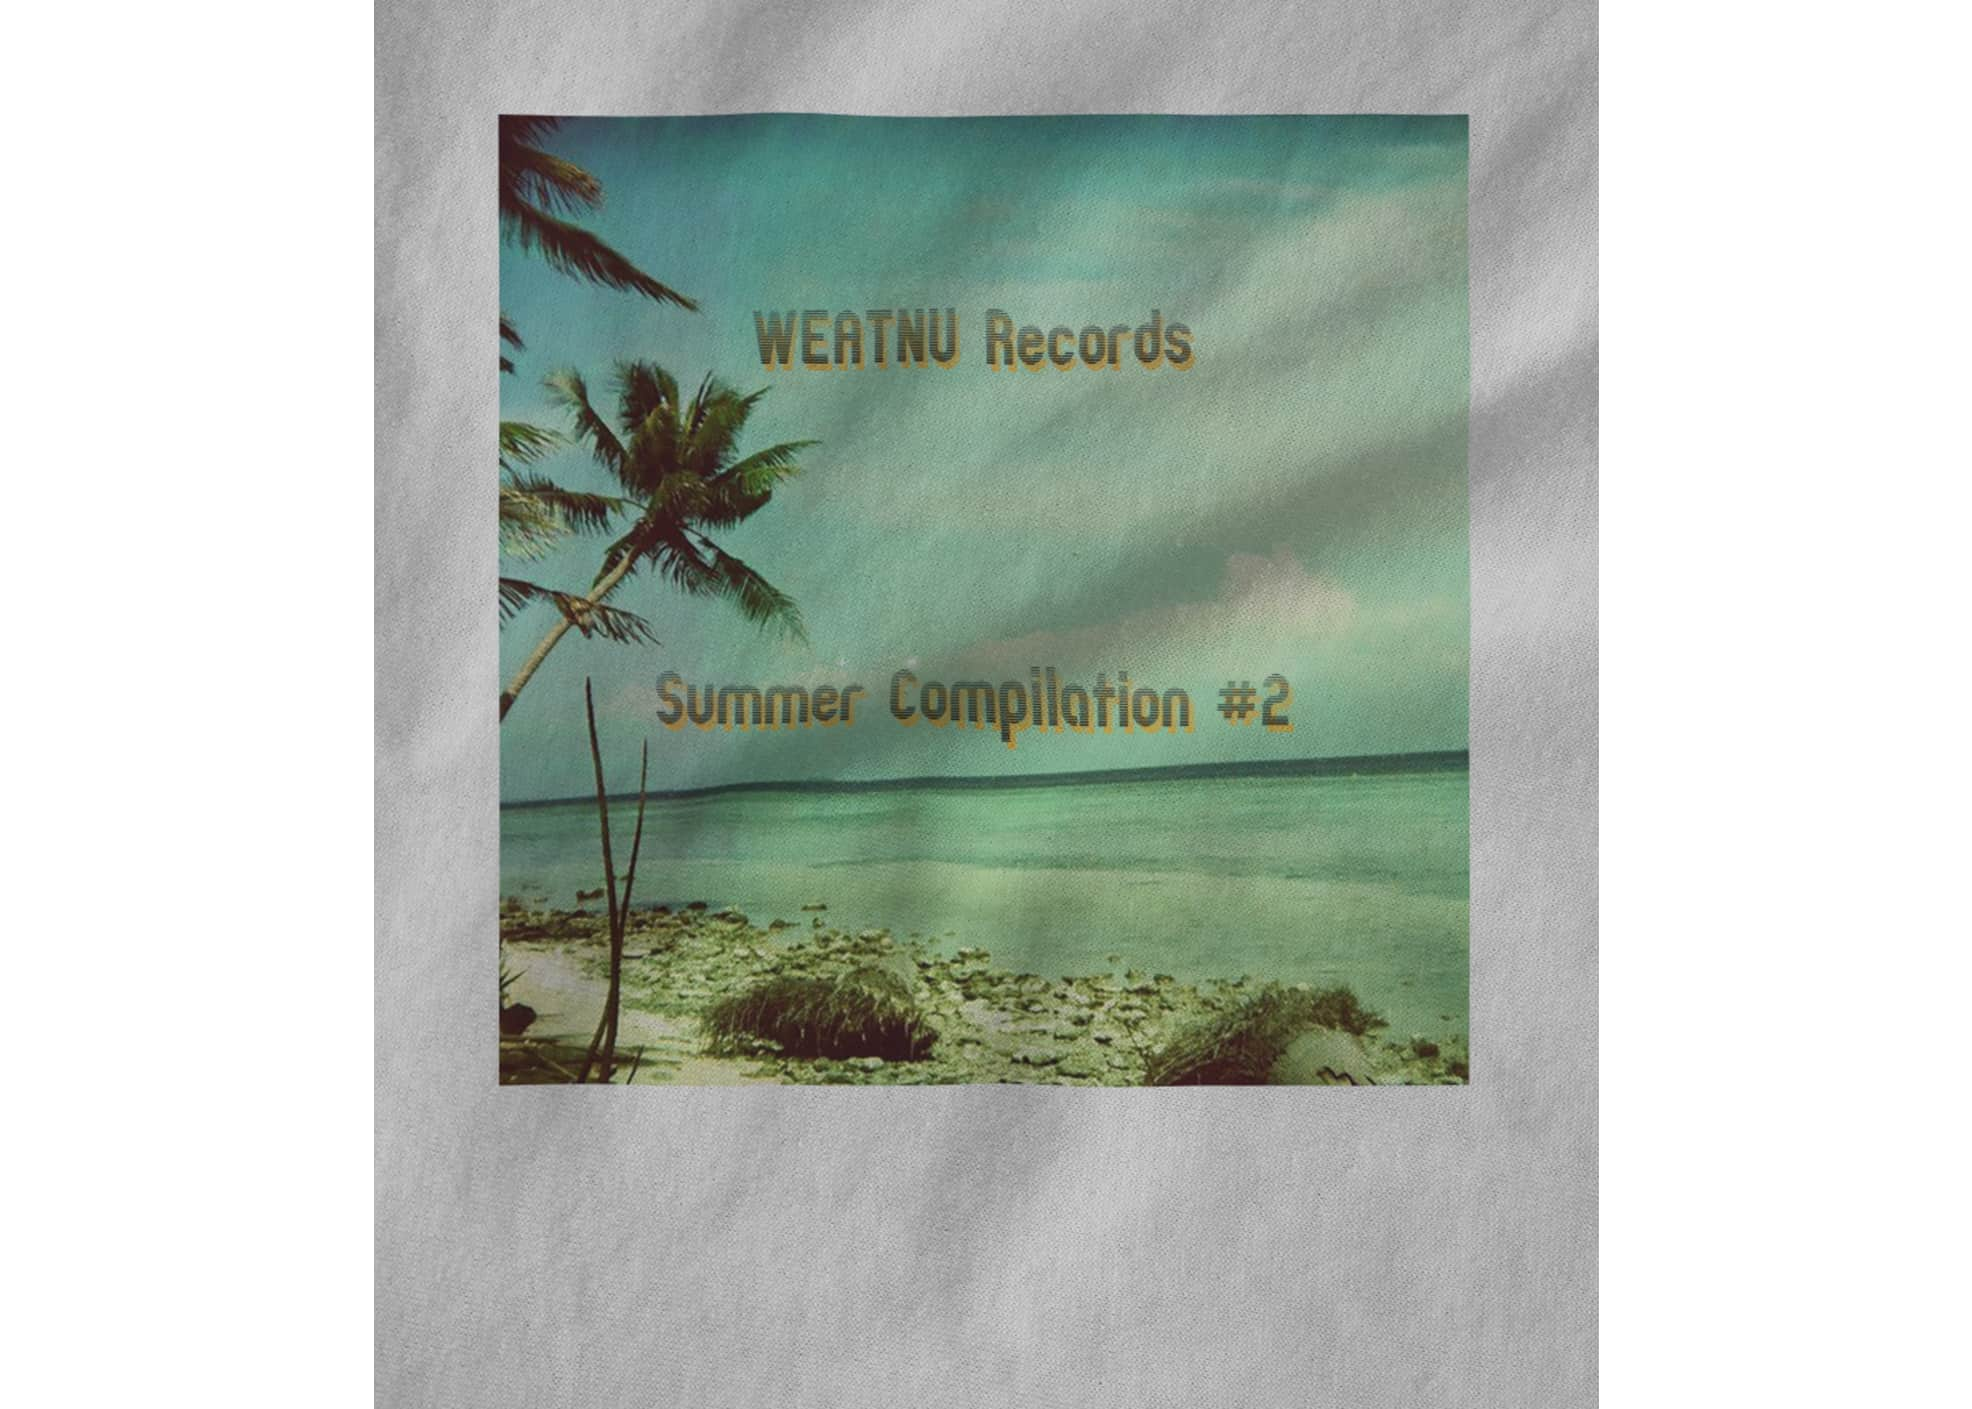 Weatnu records weatnu records  summer compilation  2  1529517906